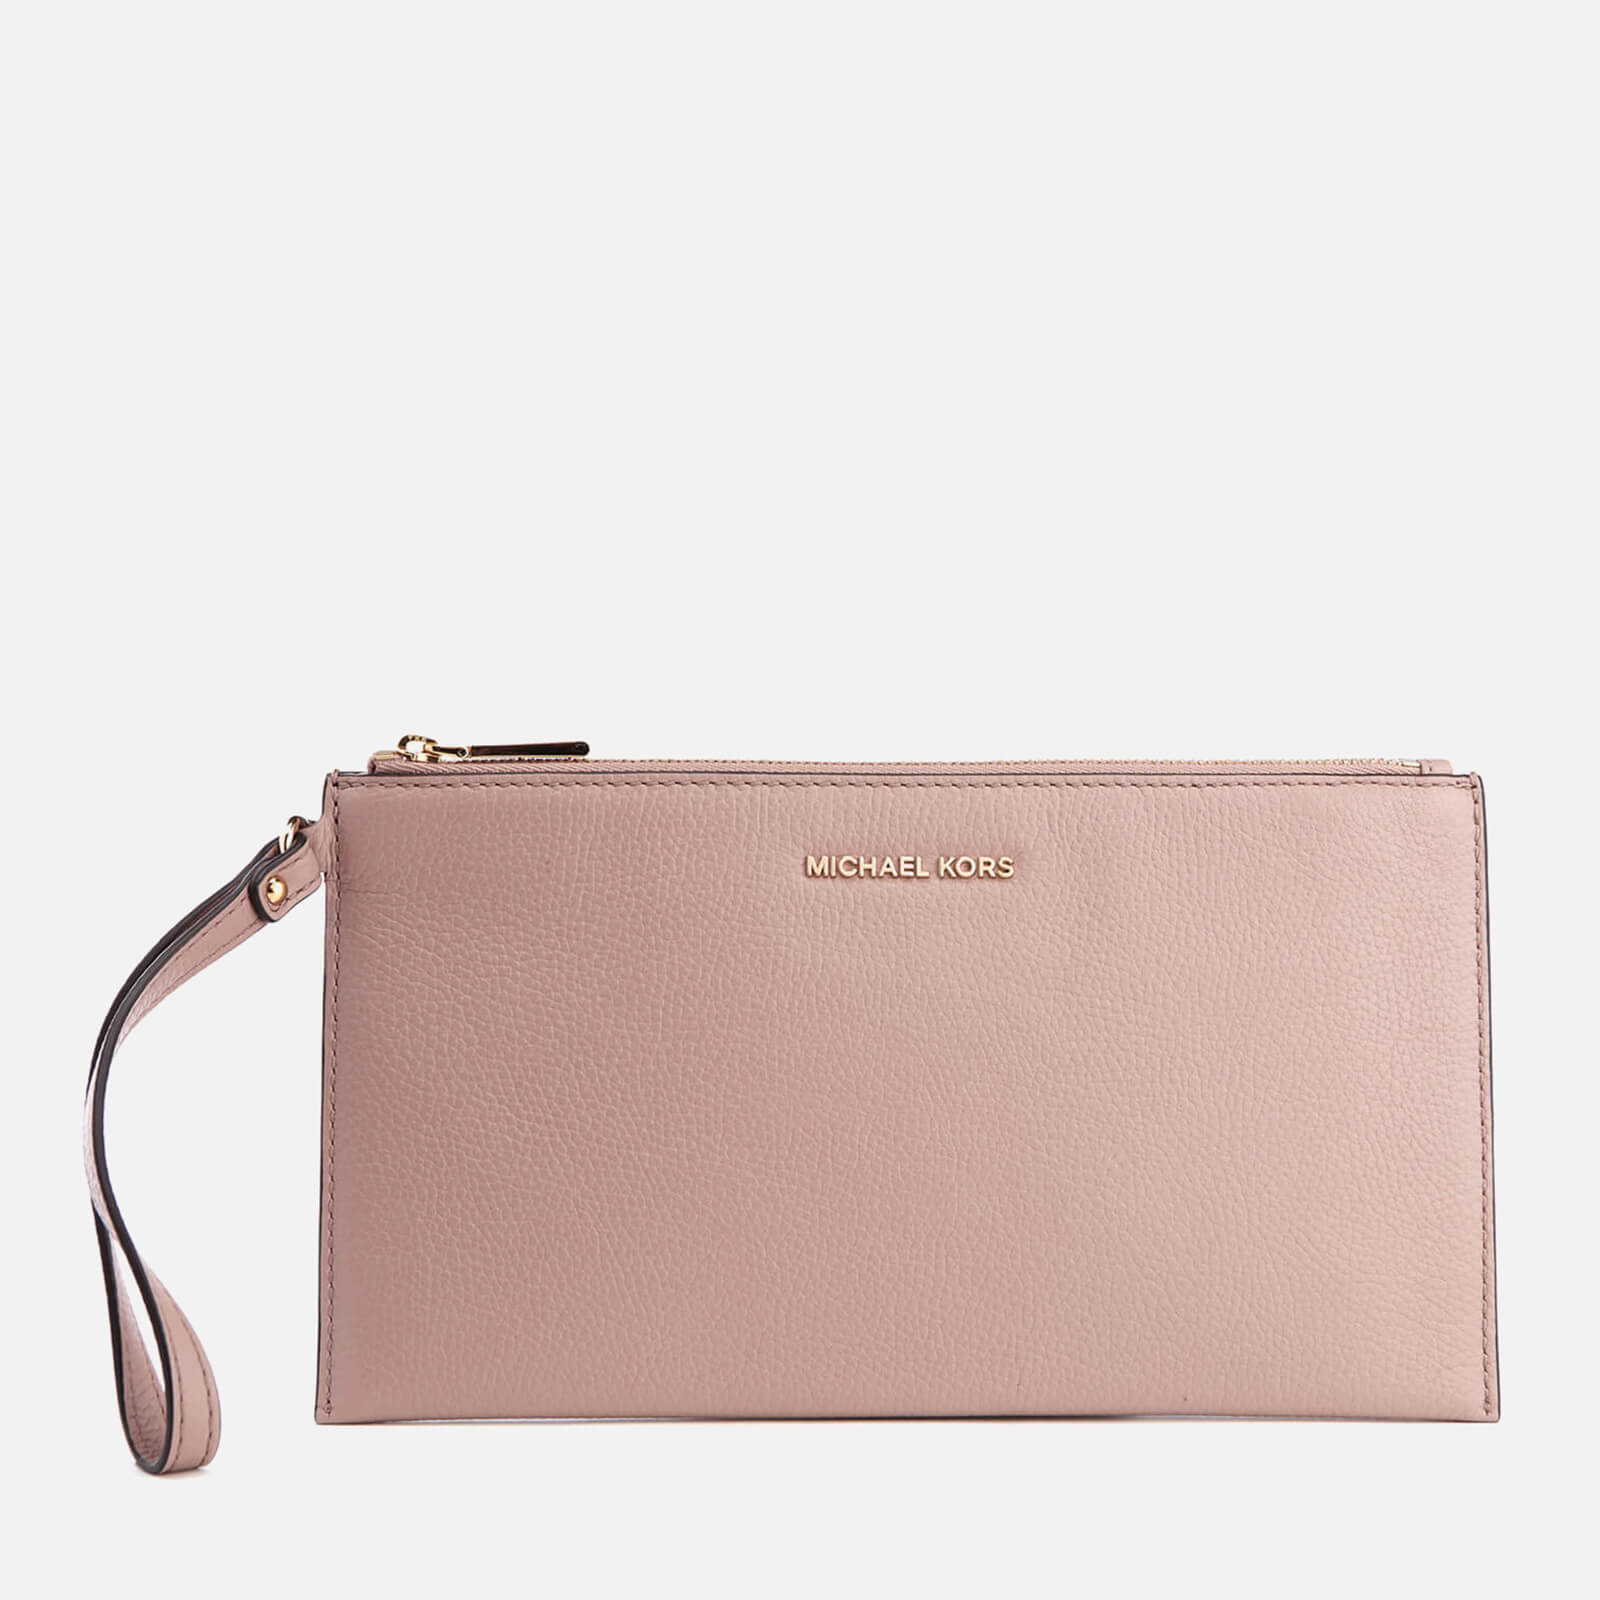 98046cfde714 MICHAEL MICHAEL KORS Women s Mercer Zip Clutch Bag - Fawn - Free UK  Delivery over £50